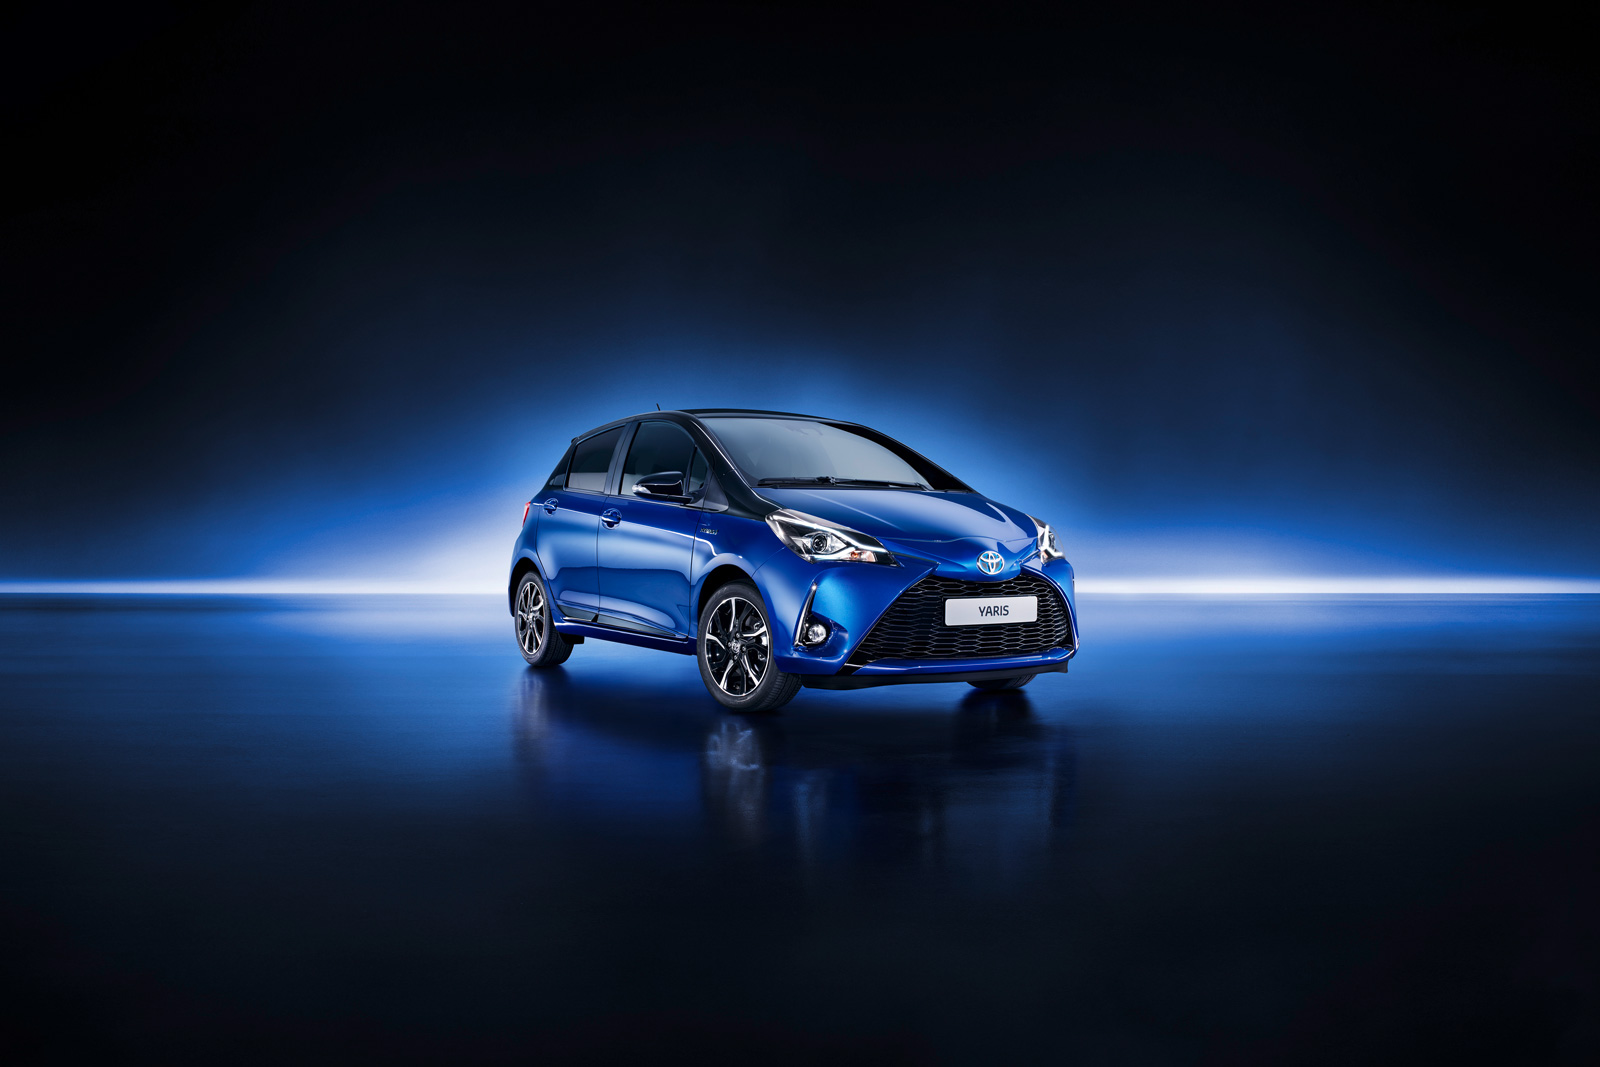 toyota yaris refreshed with sportier styling  u00bb autoguide